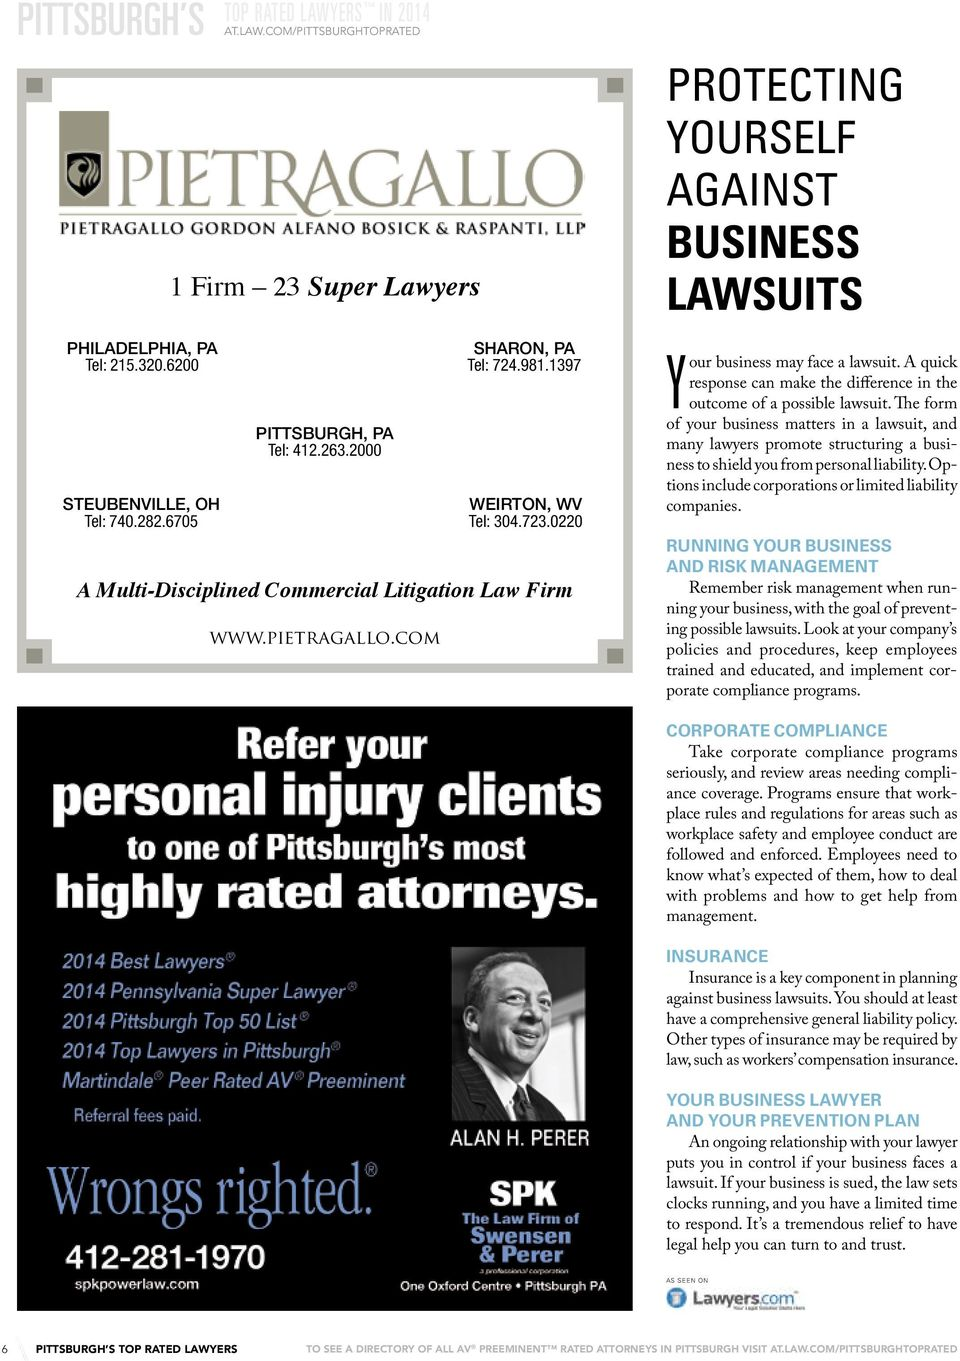 0220 A Multi-Disciplined Commercial Litigation Law Firm www.pietragallo.com protecting Yourself against business lawsuits your business may face a lawsuit.